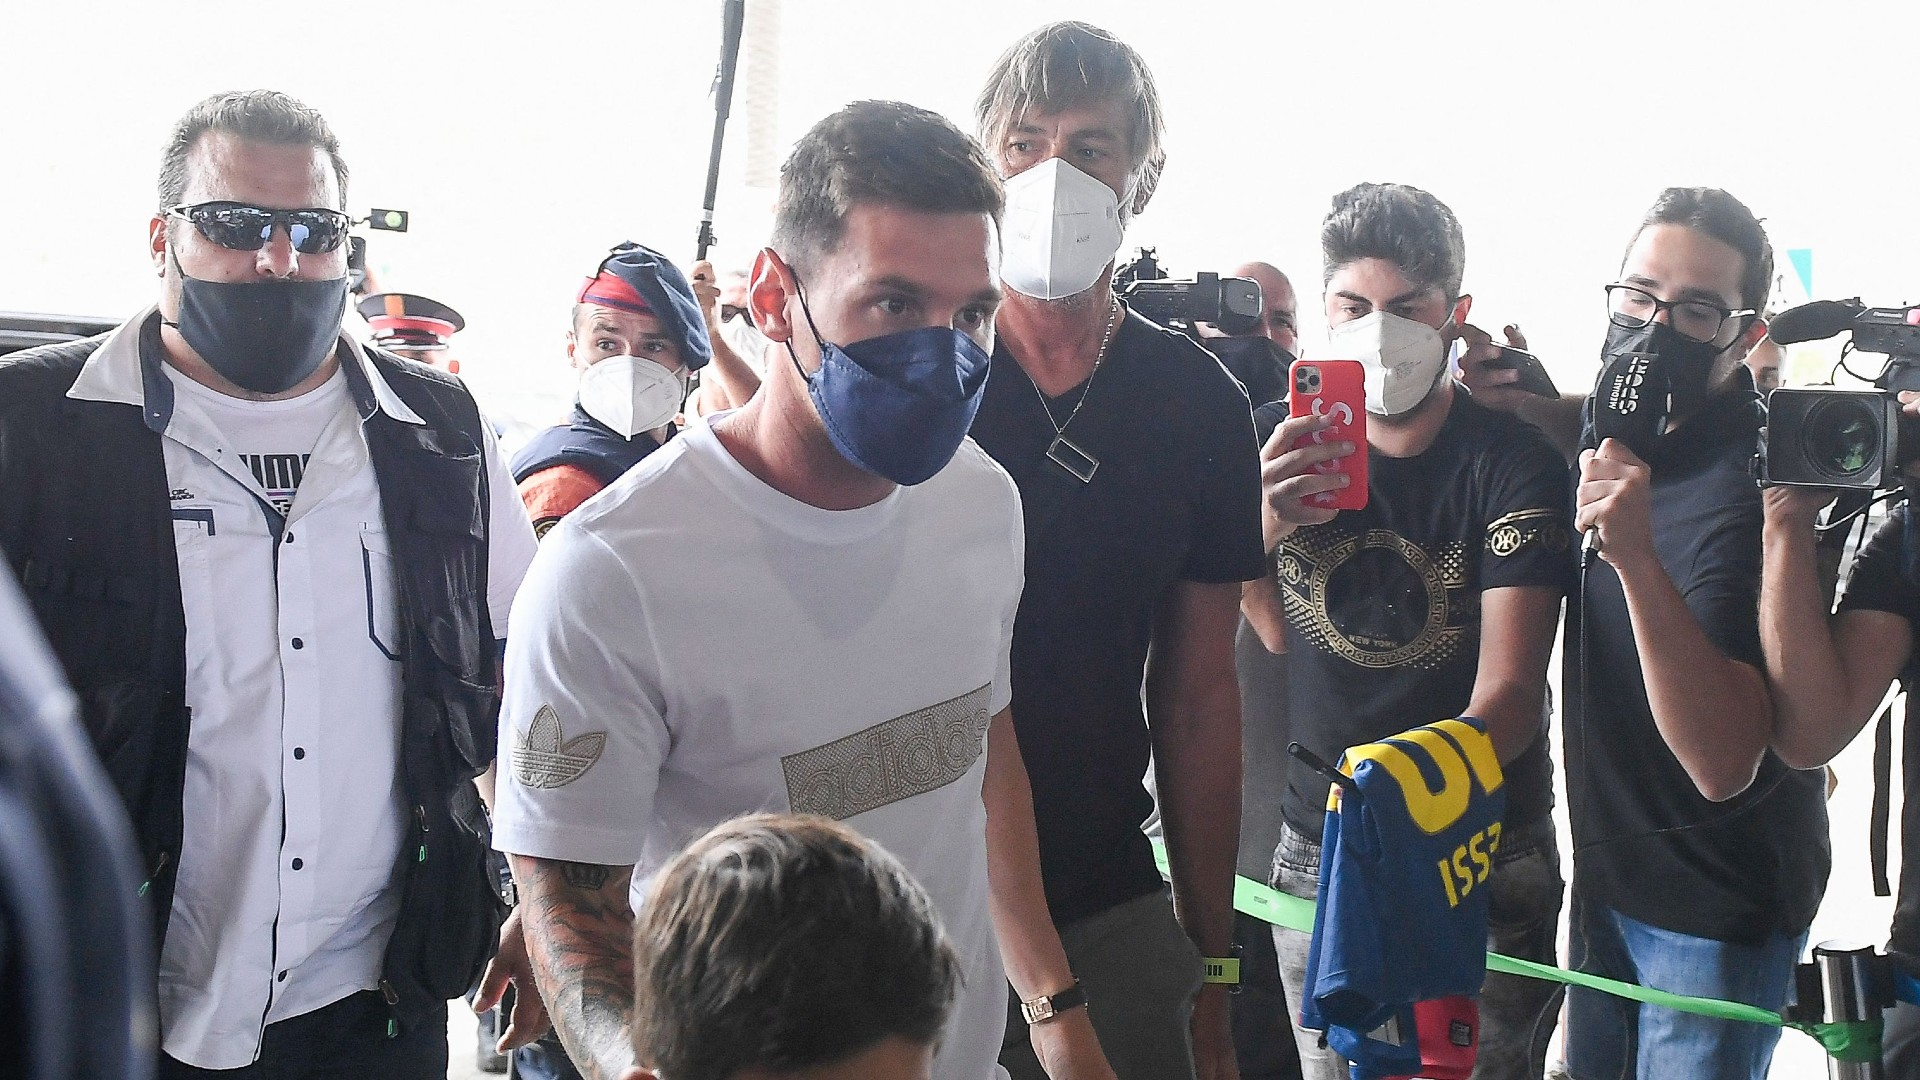 Messi agrees two-year contract with PSG and arrives in Paris to undergo medical following Barcelona exit